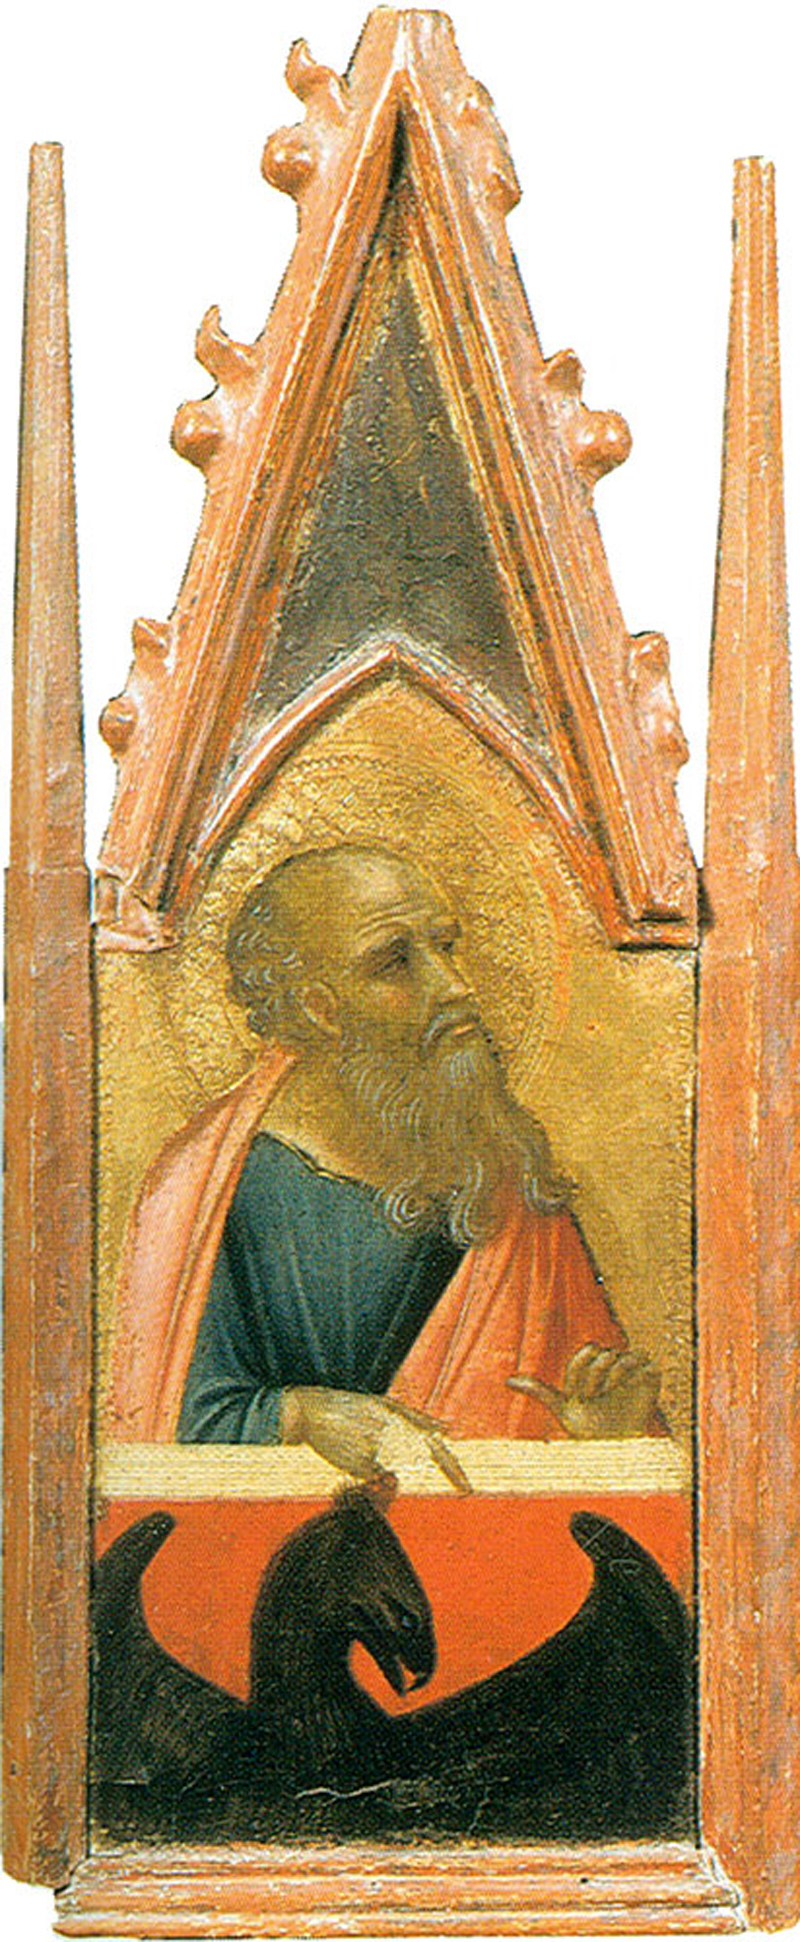 Pietro Lorenzetti (c. 1280 - 1348)  Saint John the Evangelist  Gold and tempera on panel, 1316  Galleria degli Uffizi, Florence, Italy